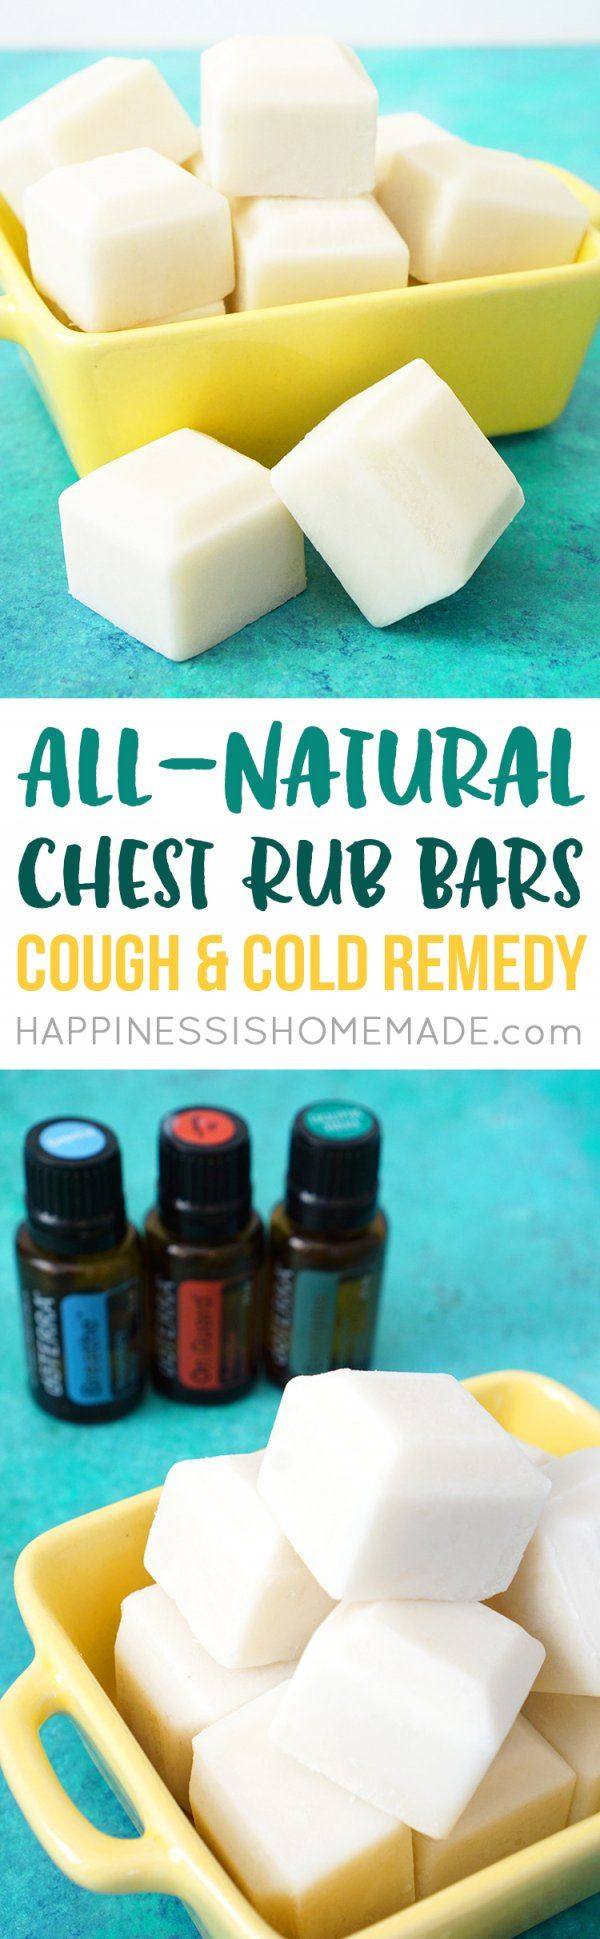 All-Natural Chest Rub Bars: Cough & Cold Remedy – Happiness is Homemade